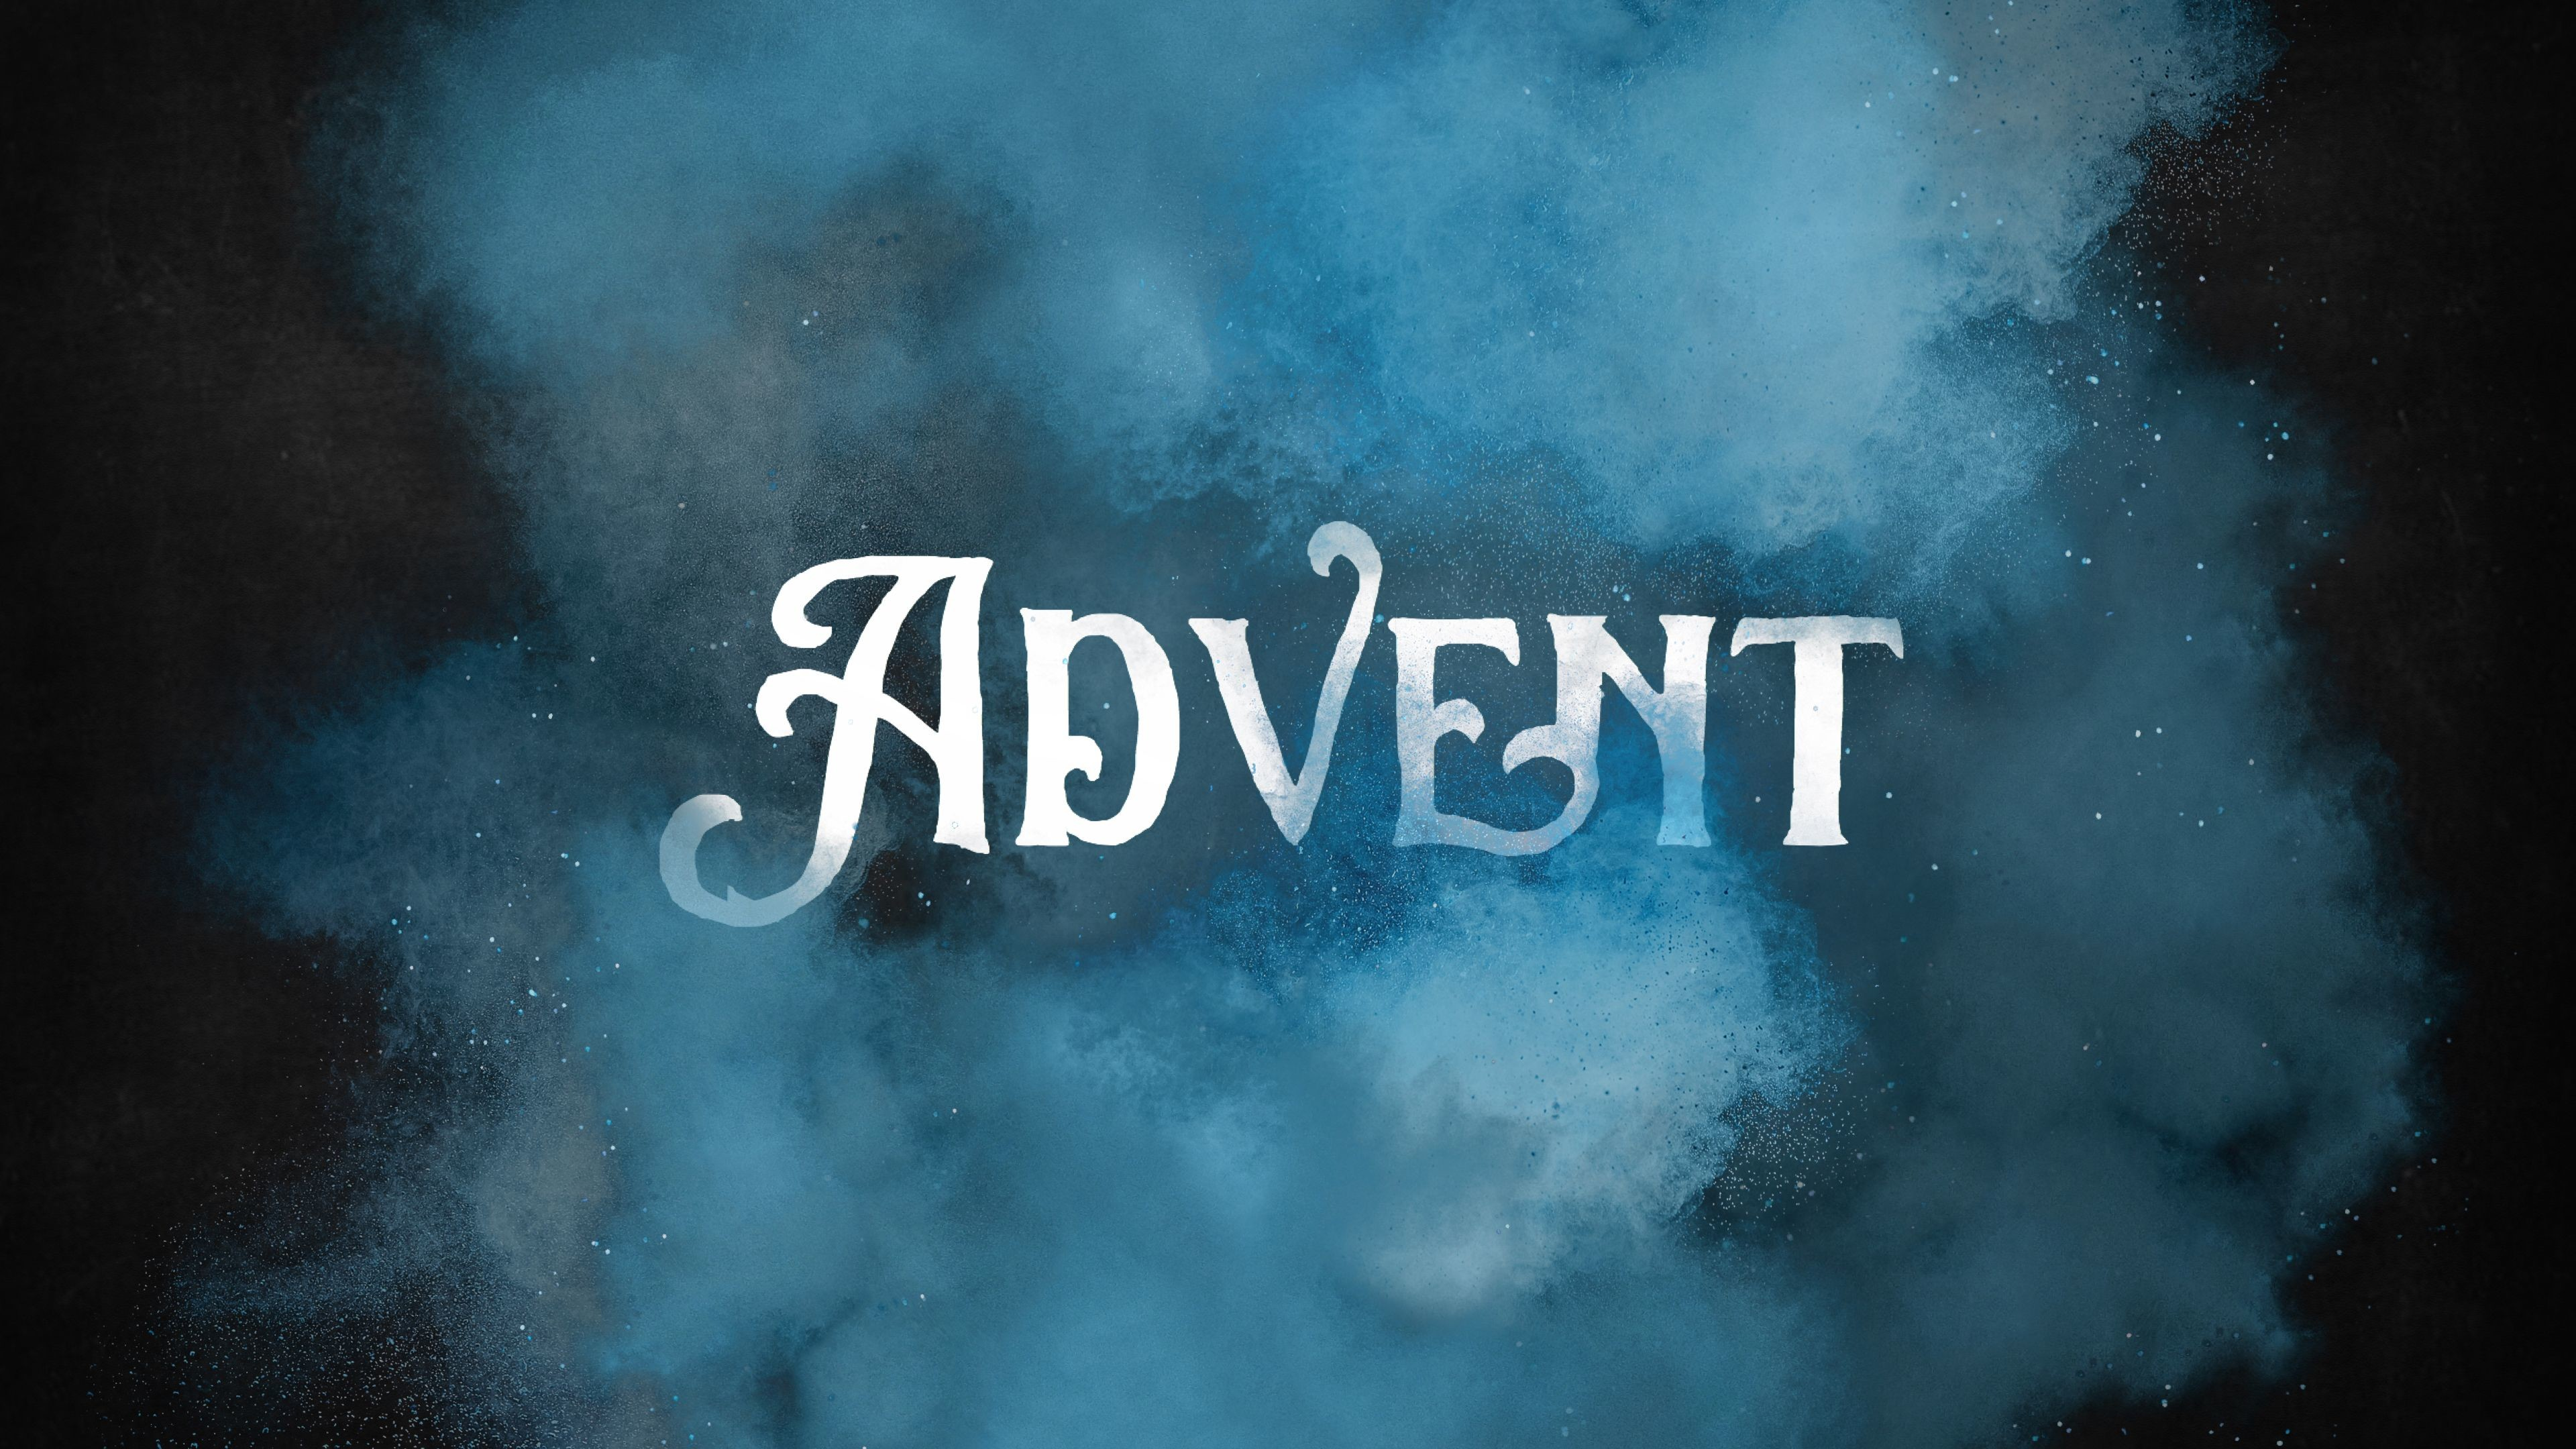 Advent Wallpaper 57 Images